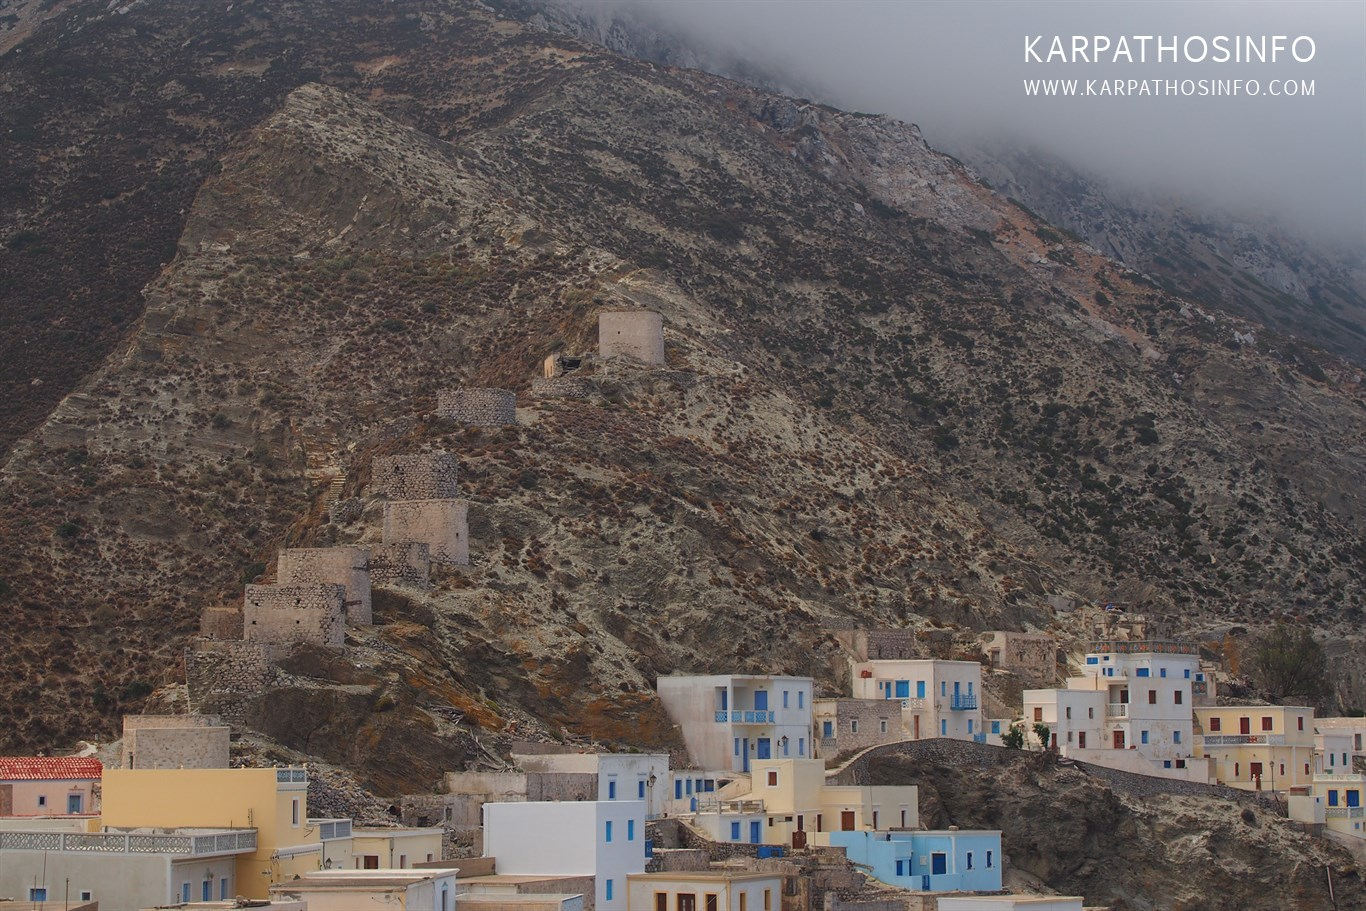 Windmills in Greece, Karpathos